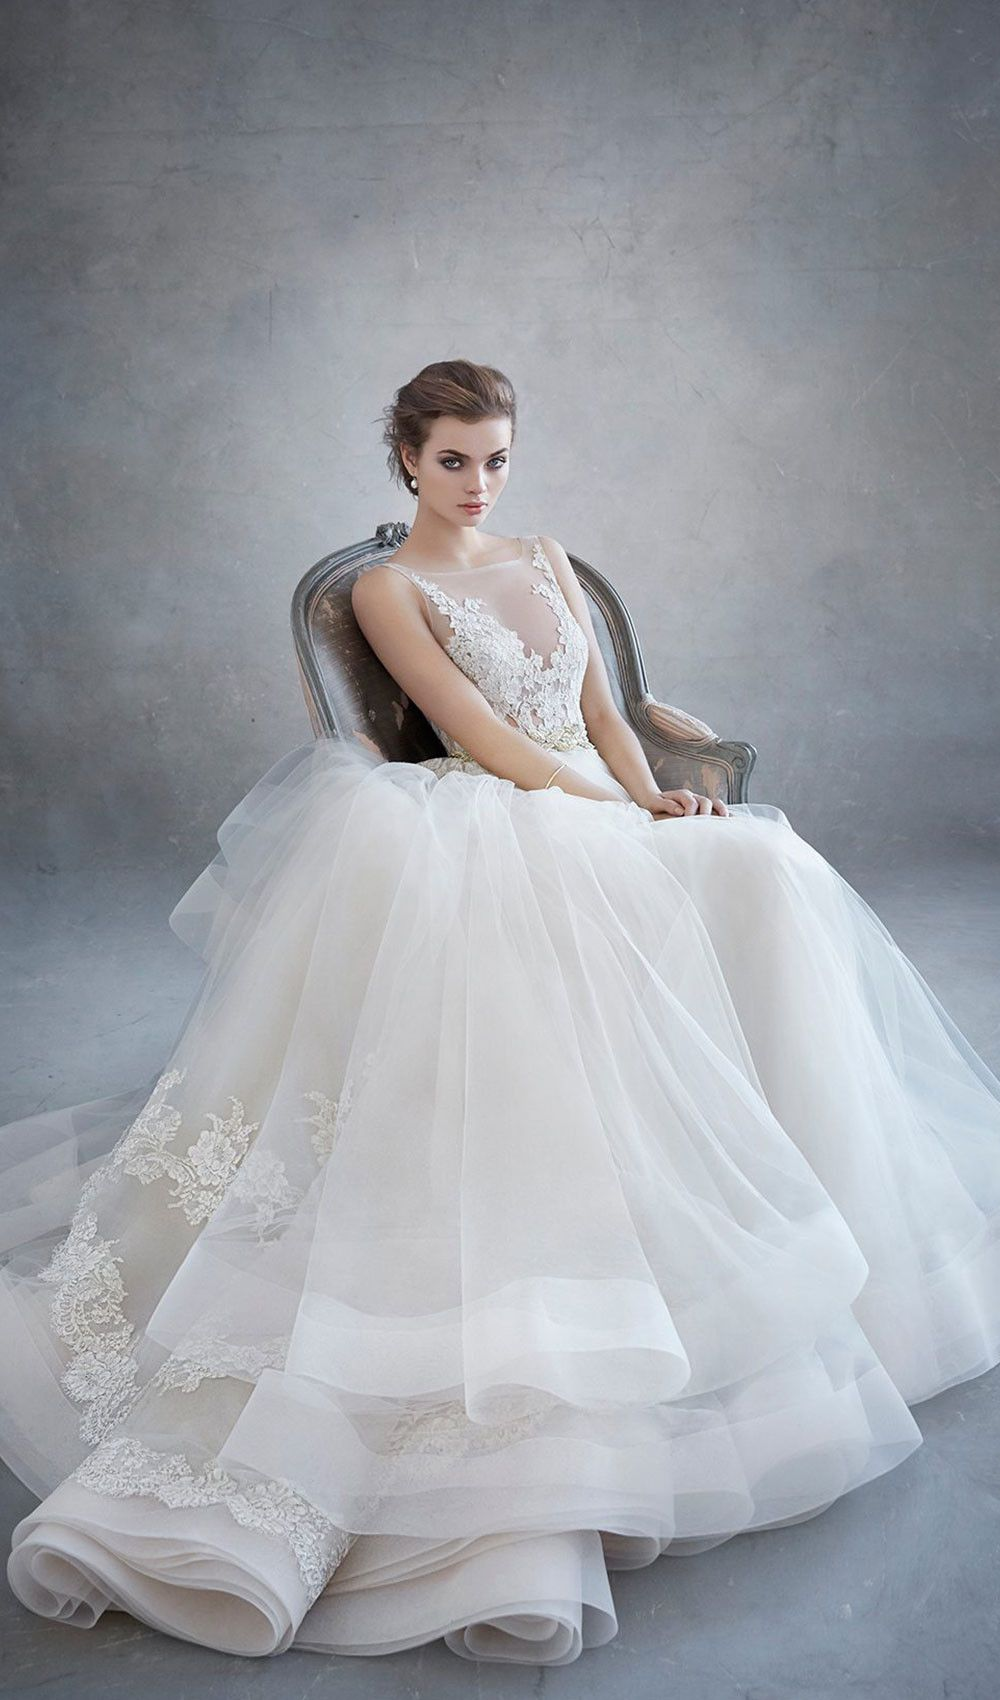 Champagne and ivory wedding dress  Try this champagne tulle wedding dress ivorygold alencon lace